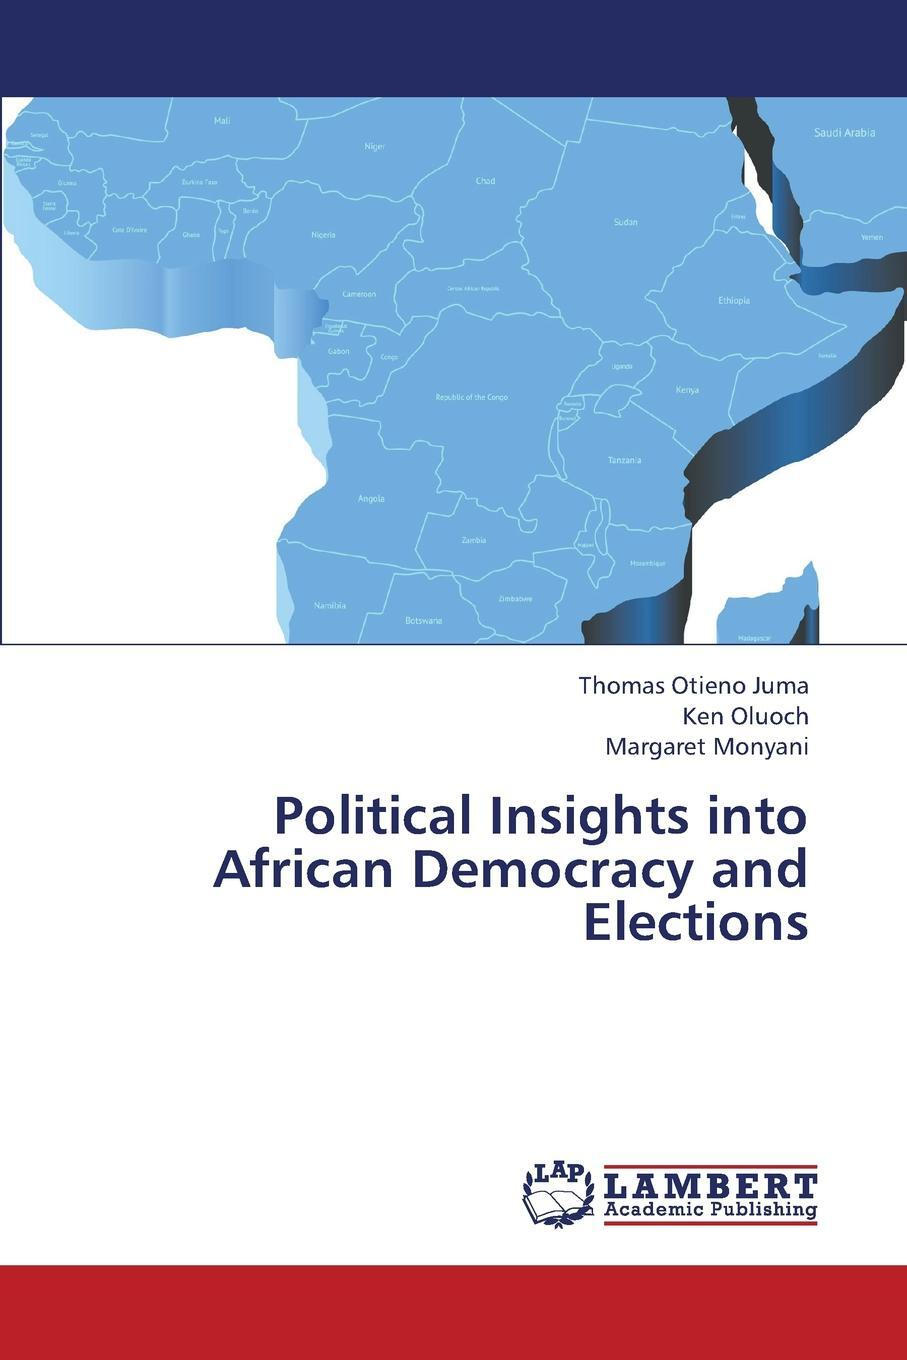 Political Insights Into African Democracy and Elections